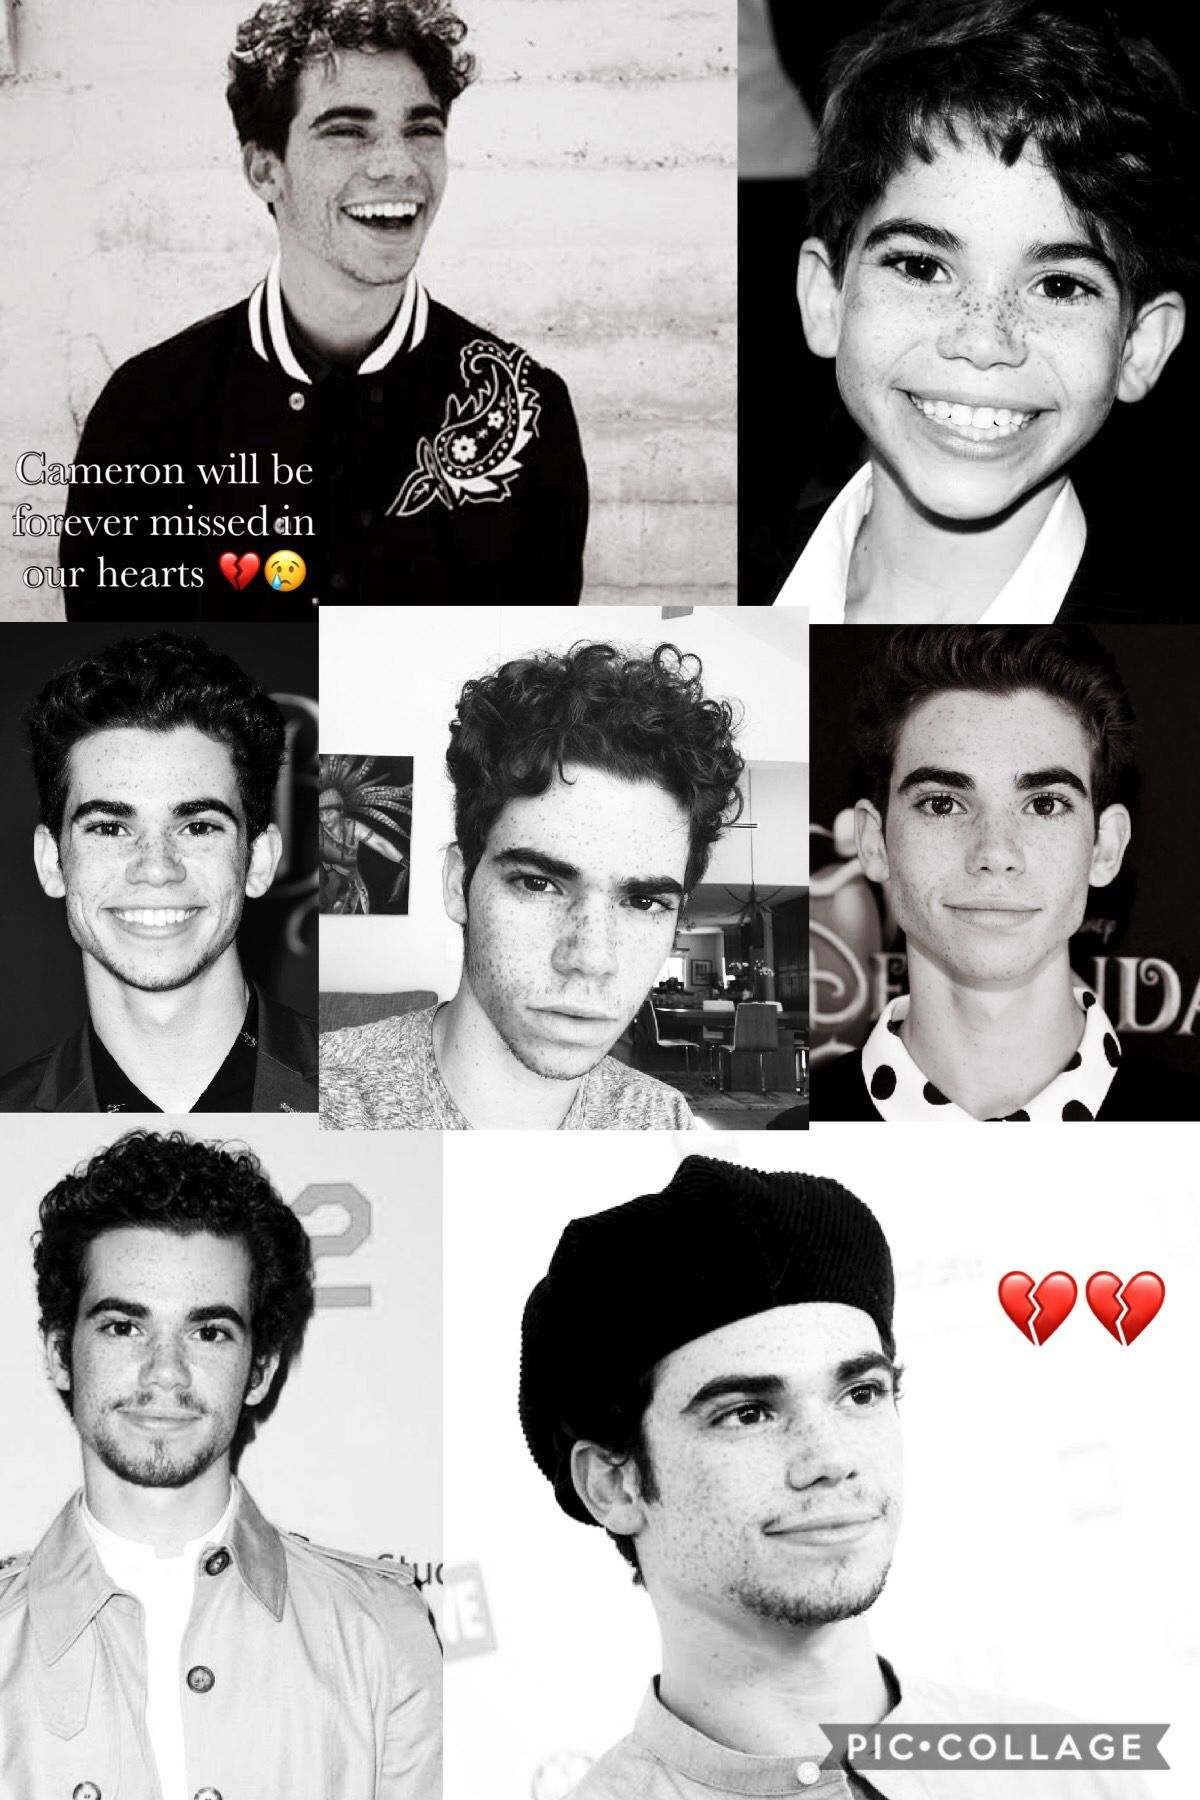 Pin By Hailey Luvianos On In Memory Of Cameron Boyce Cameron Boyce Cameron Boys Cameron